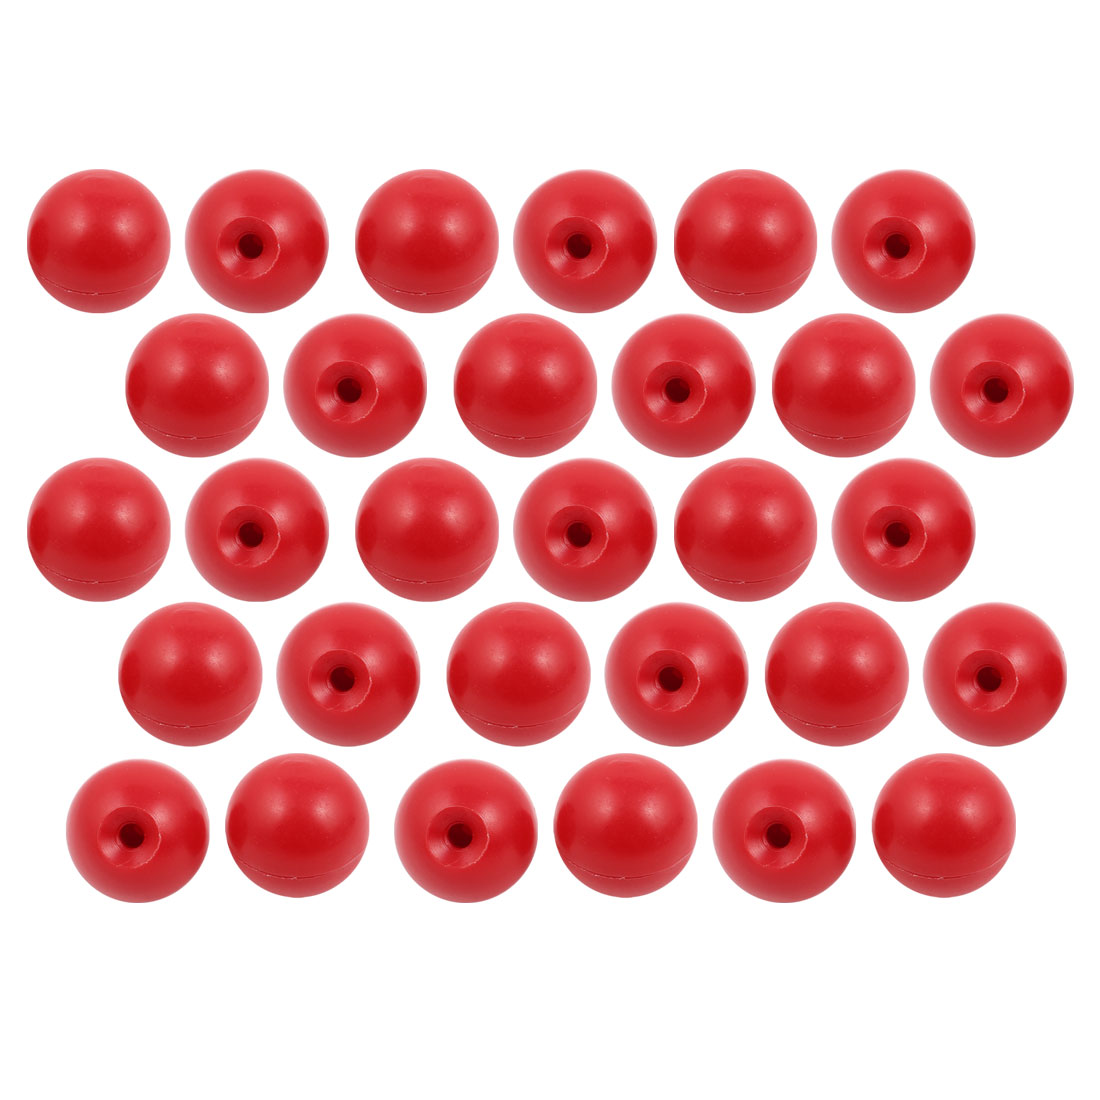 30 Pcs M6 x 30mm Plastic Ball Machine Tool Accessories Console Handle Red